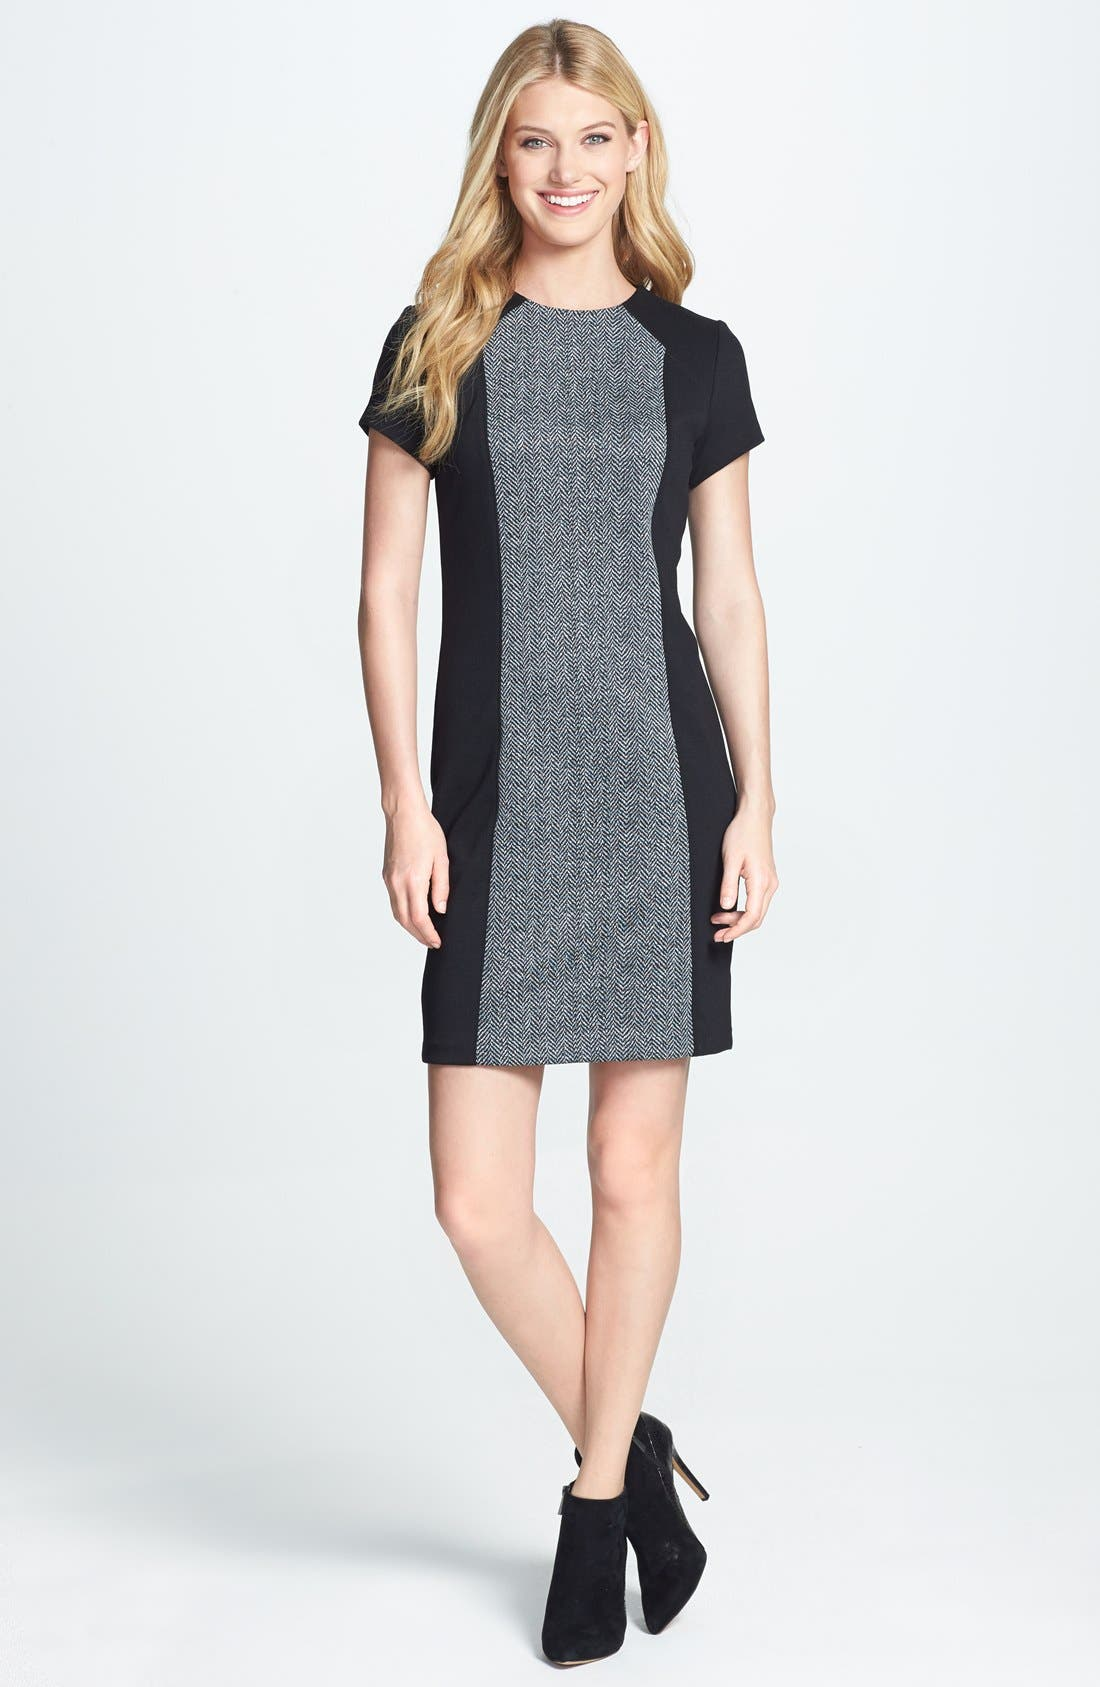 Alternate Image 1 Selected - MICHAEL Michael Kors Colorblock Herringbone Print Dress